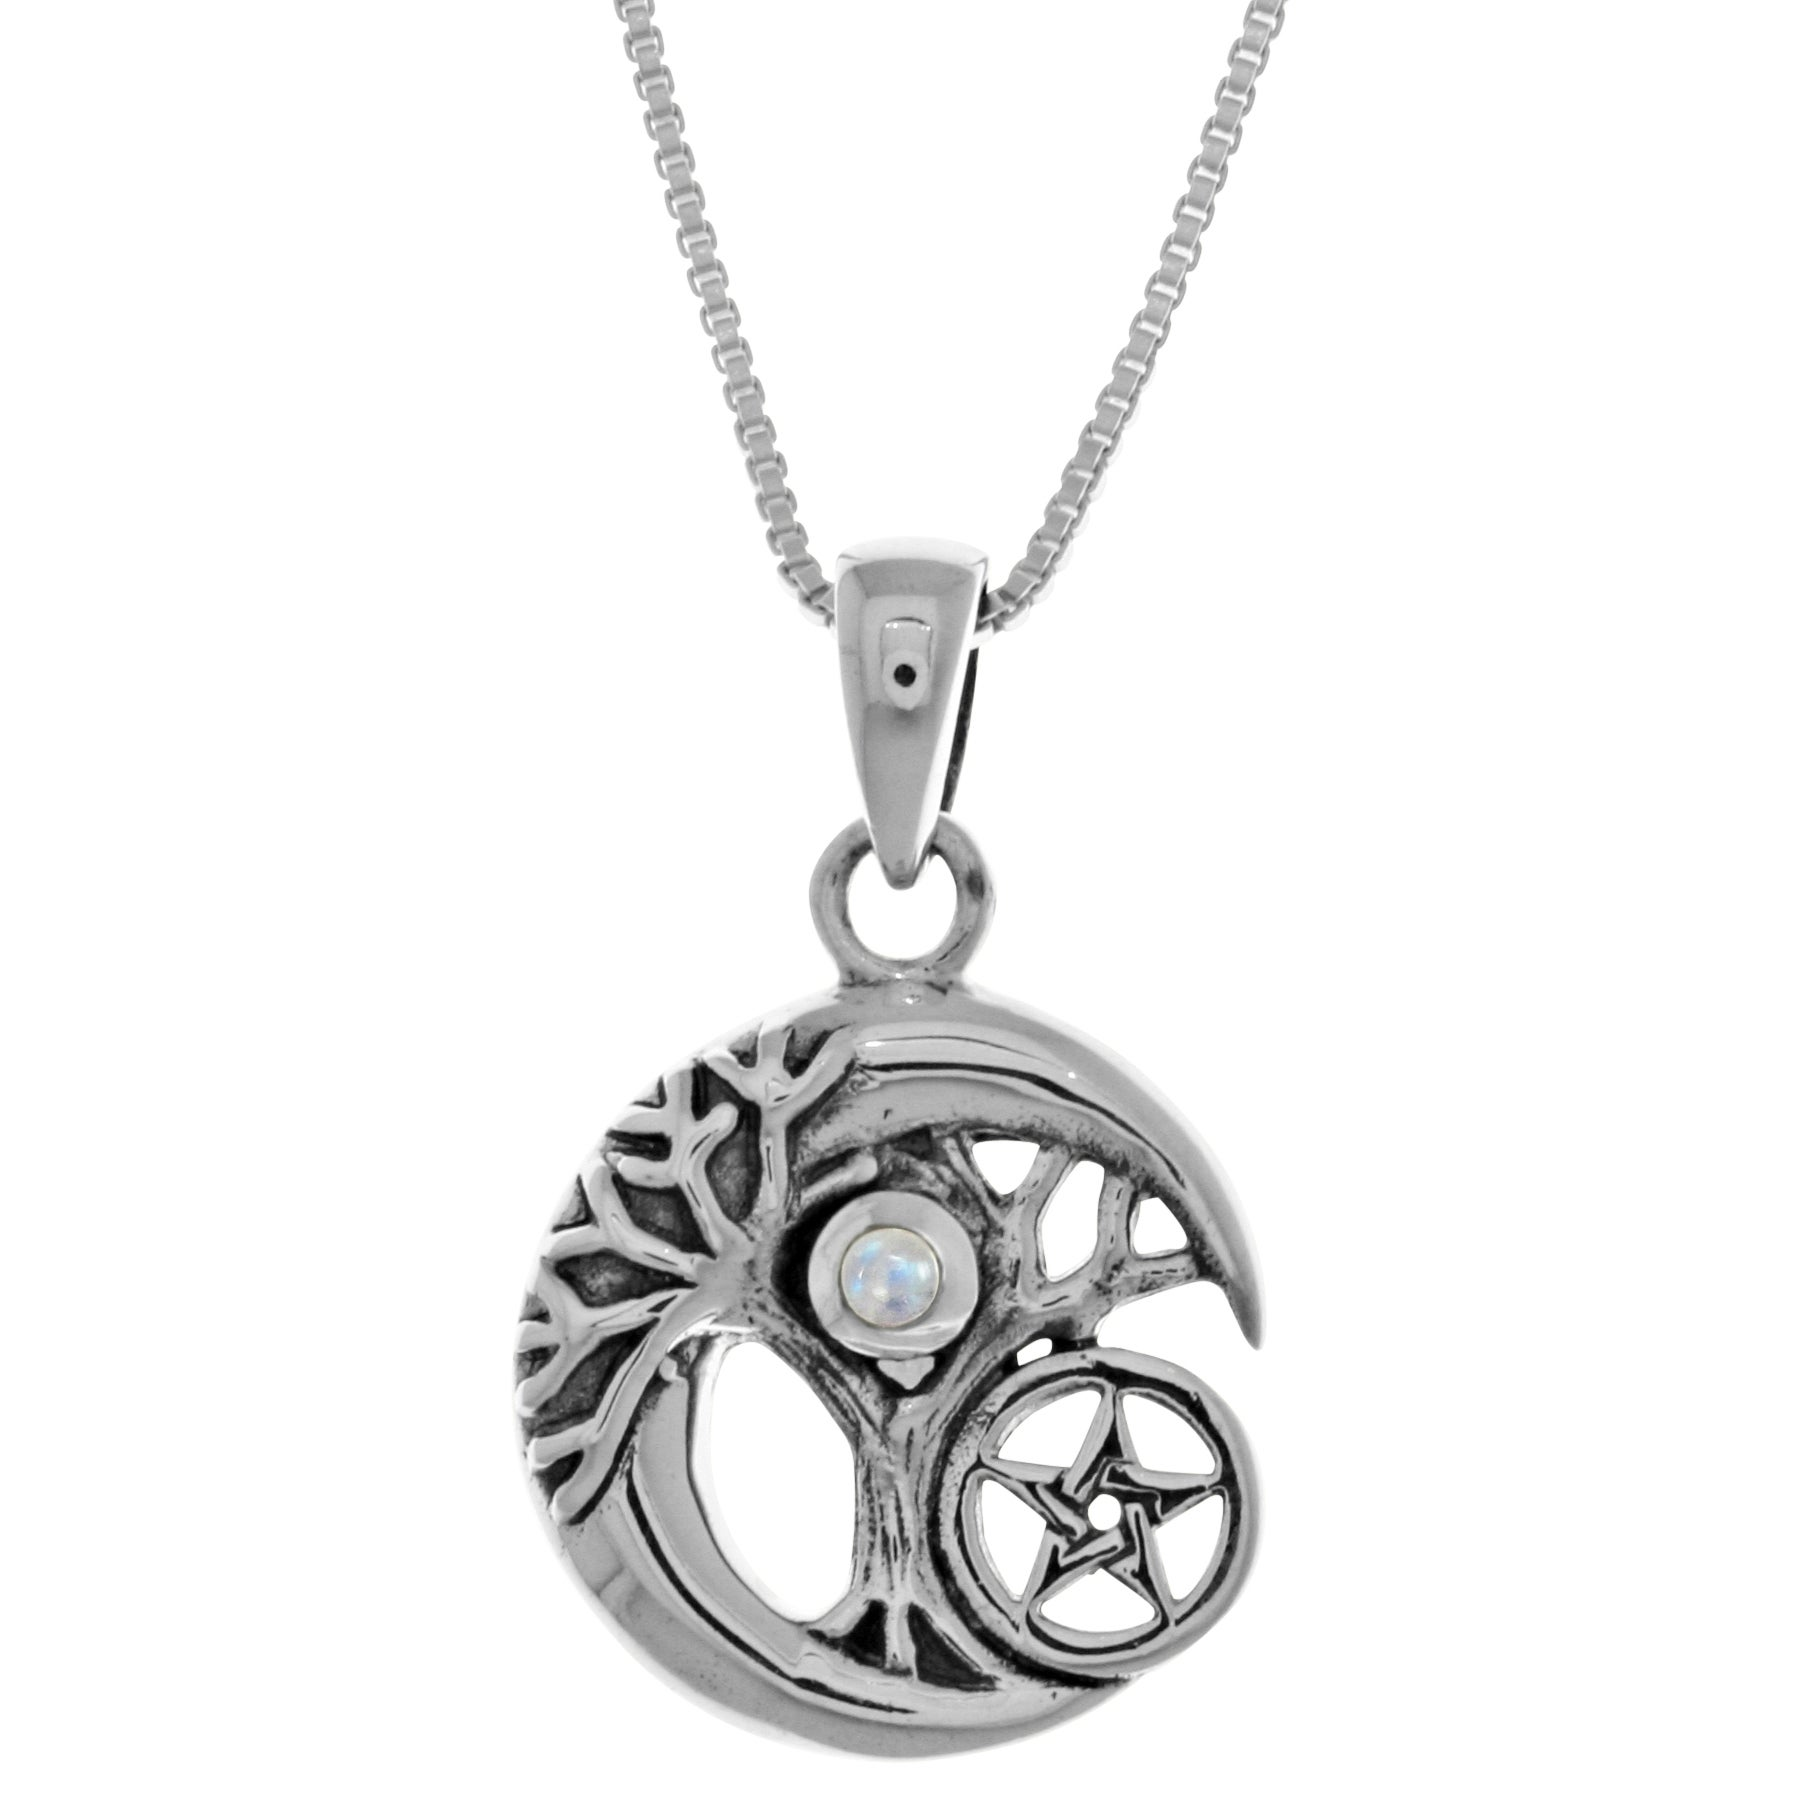 Sterl silver celtic tree of life moon star pendant free shipping sterl silver celtic tree of life moon star pendant free shipping on orders over 45 overstock 17681340 aloadofball Choice Image